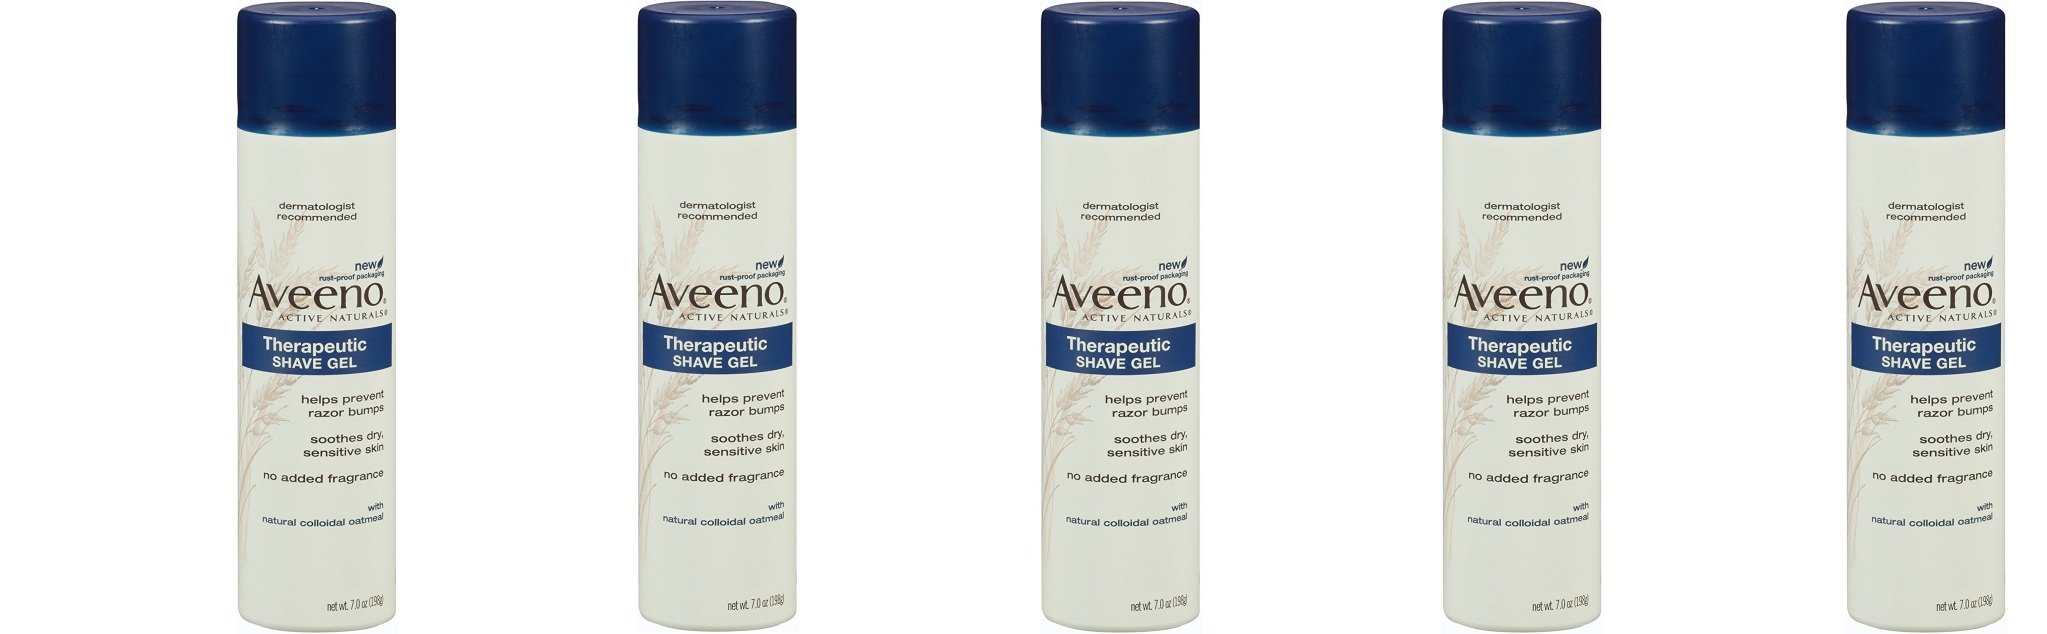 Aveeno Skin Relief Shave Gel DUezWo, 5 Pack (7 Ounce) by Aveeno